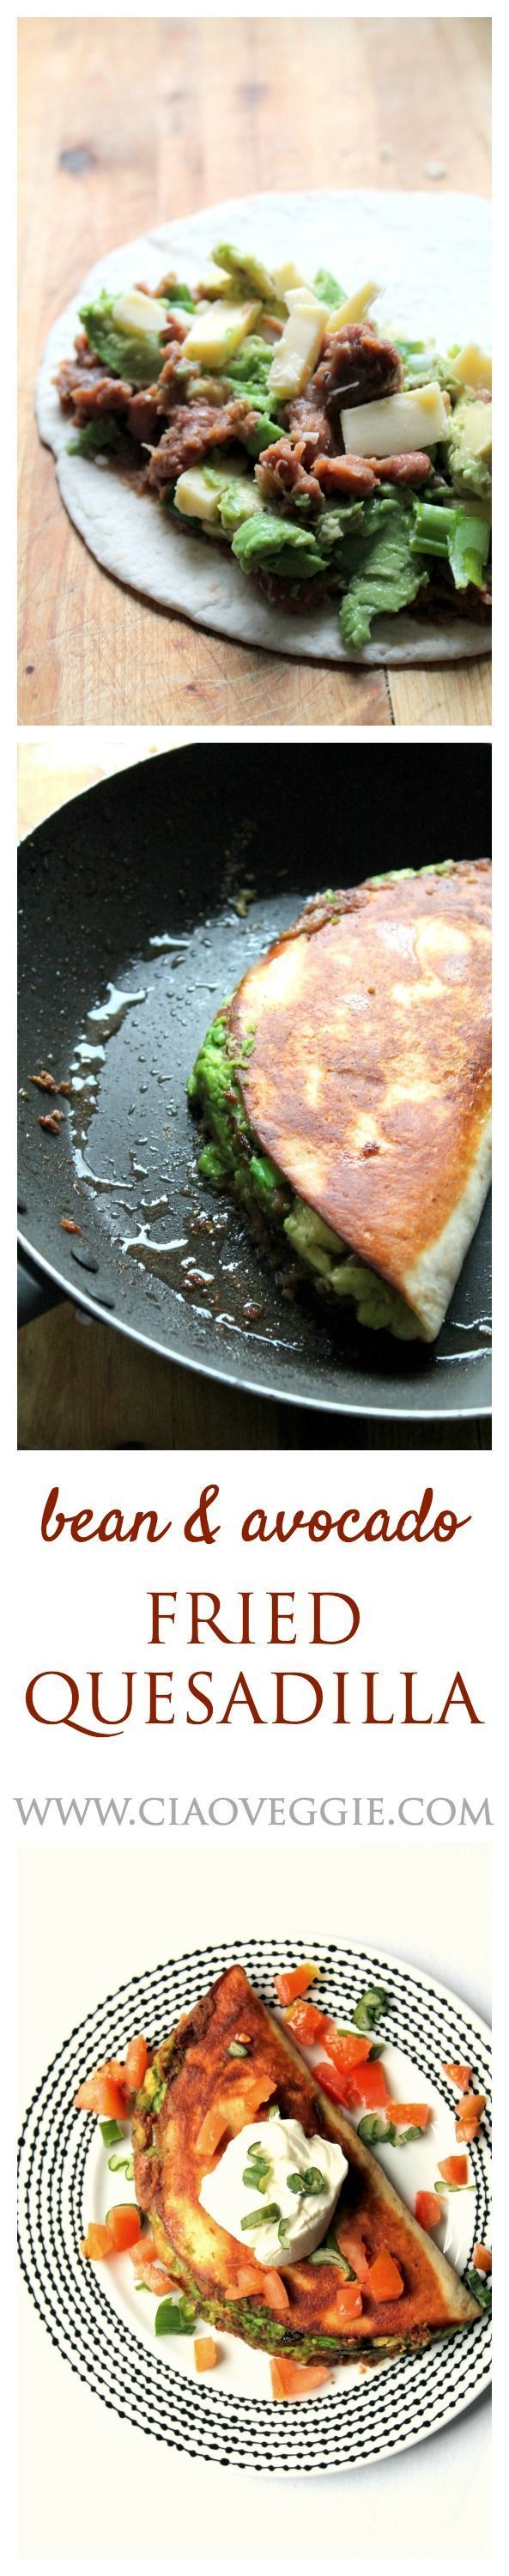 This addictive vegetarian quesadilla is packed with home made refried beans, avocados and cheese. Perfect easy mid-week meal.